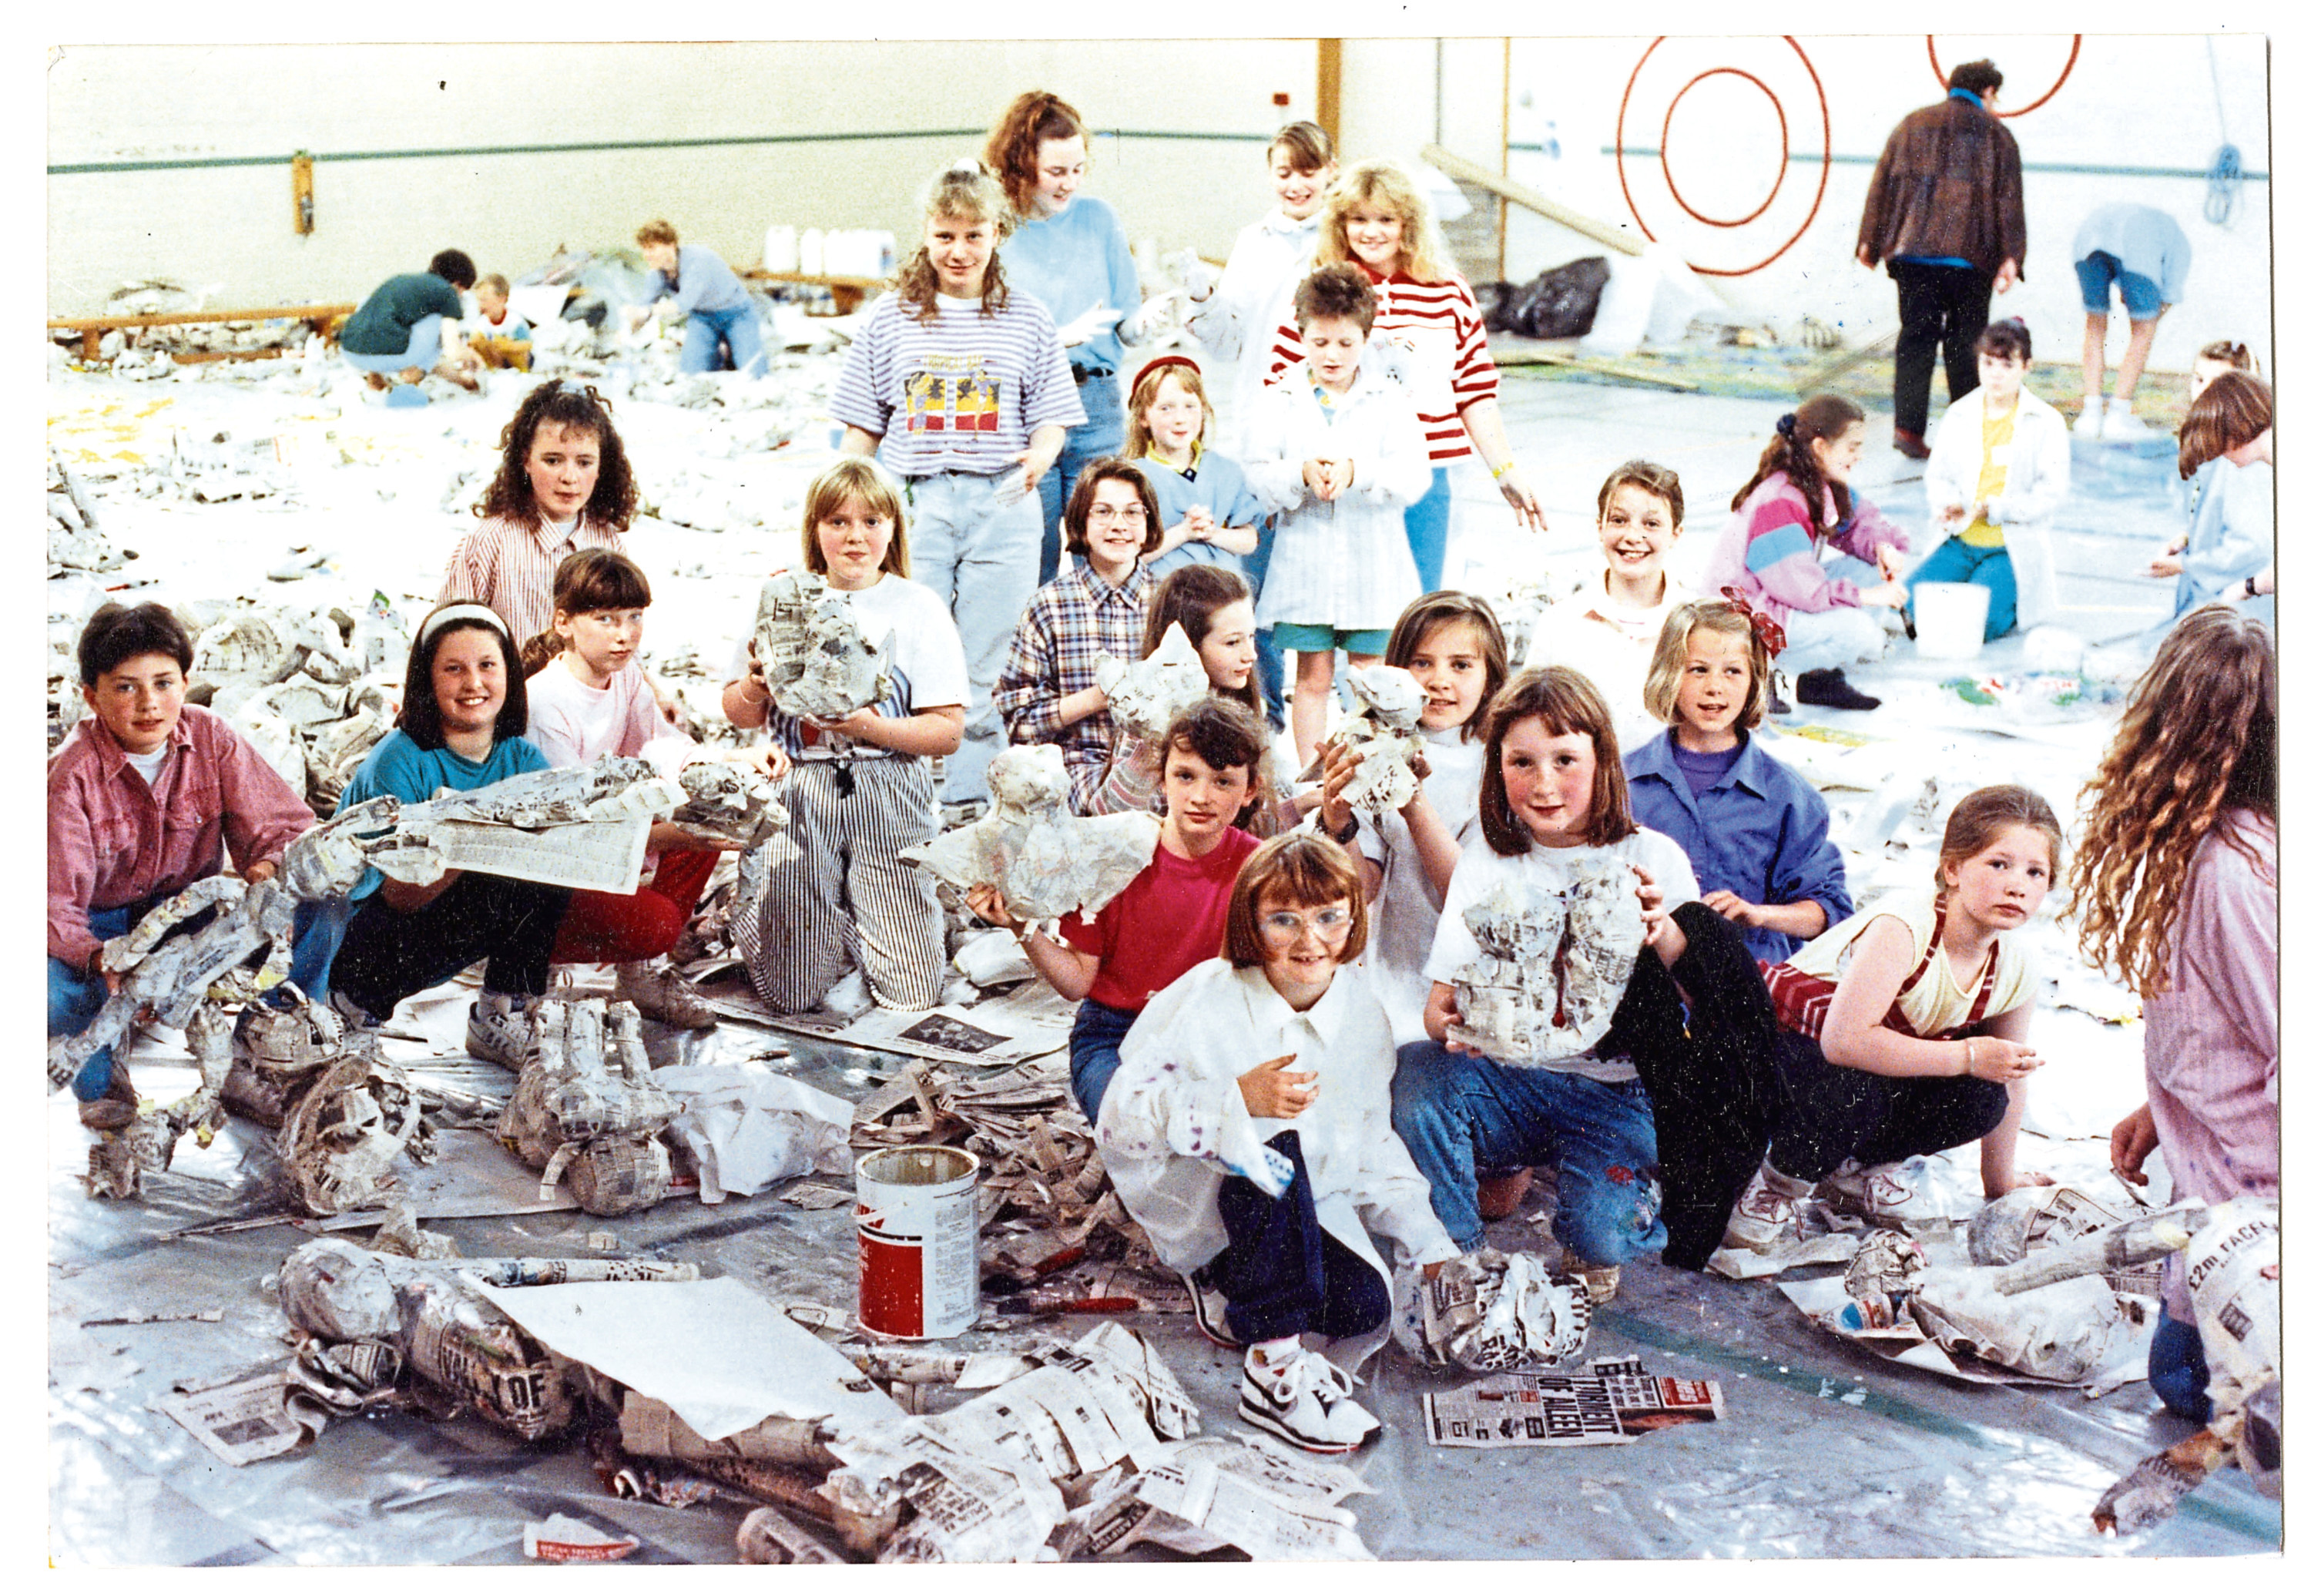 Back in the Day - Monday 28 2018 Dundee 800 music project Noye's Fludde make papier mache models for the show in 1991.  D26 1991-07-10 Dundee 800 project (C)DCT  T+P 10/07/1991